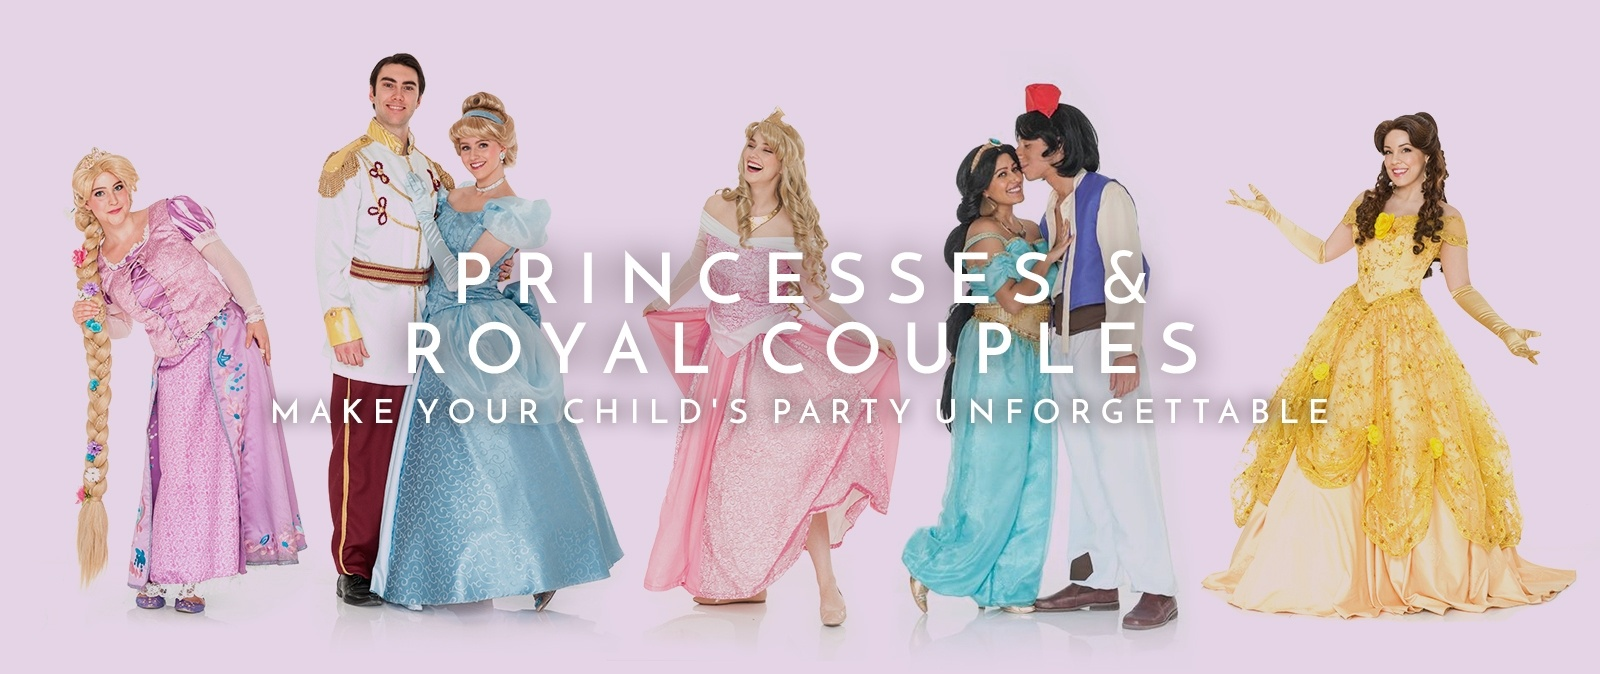 princesses royal couple parties toronto milton oshawa